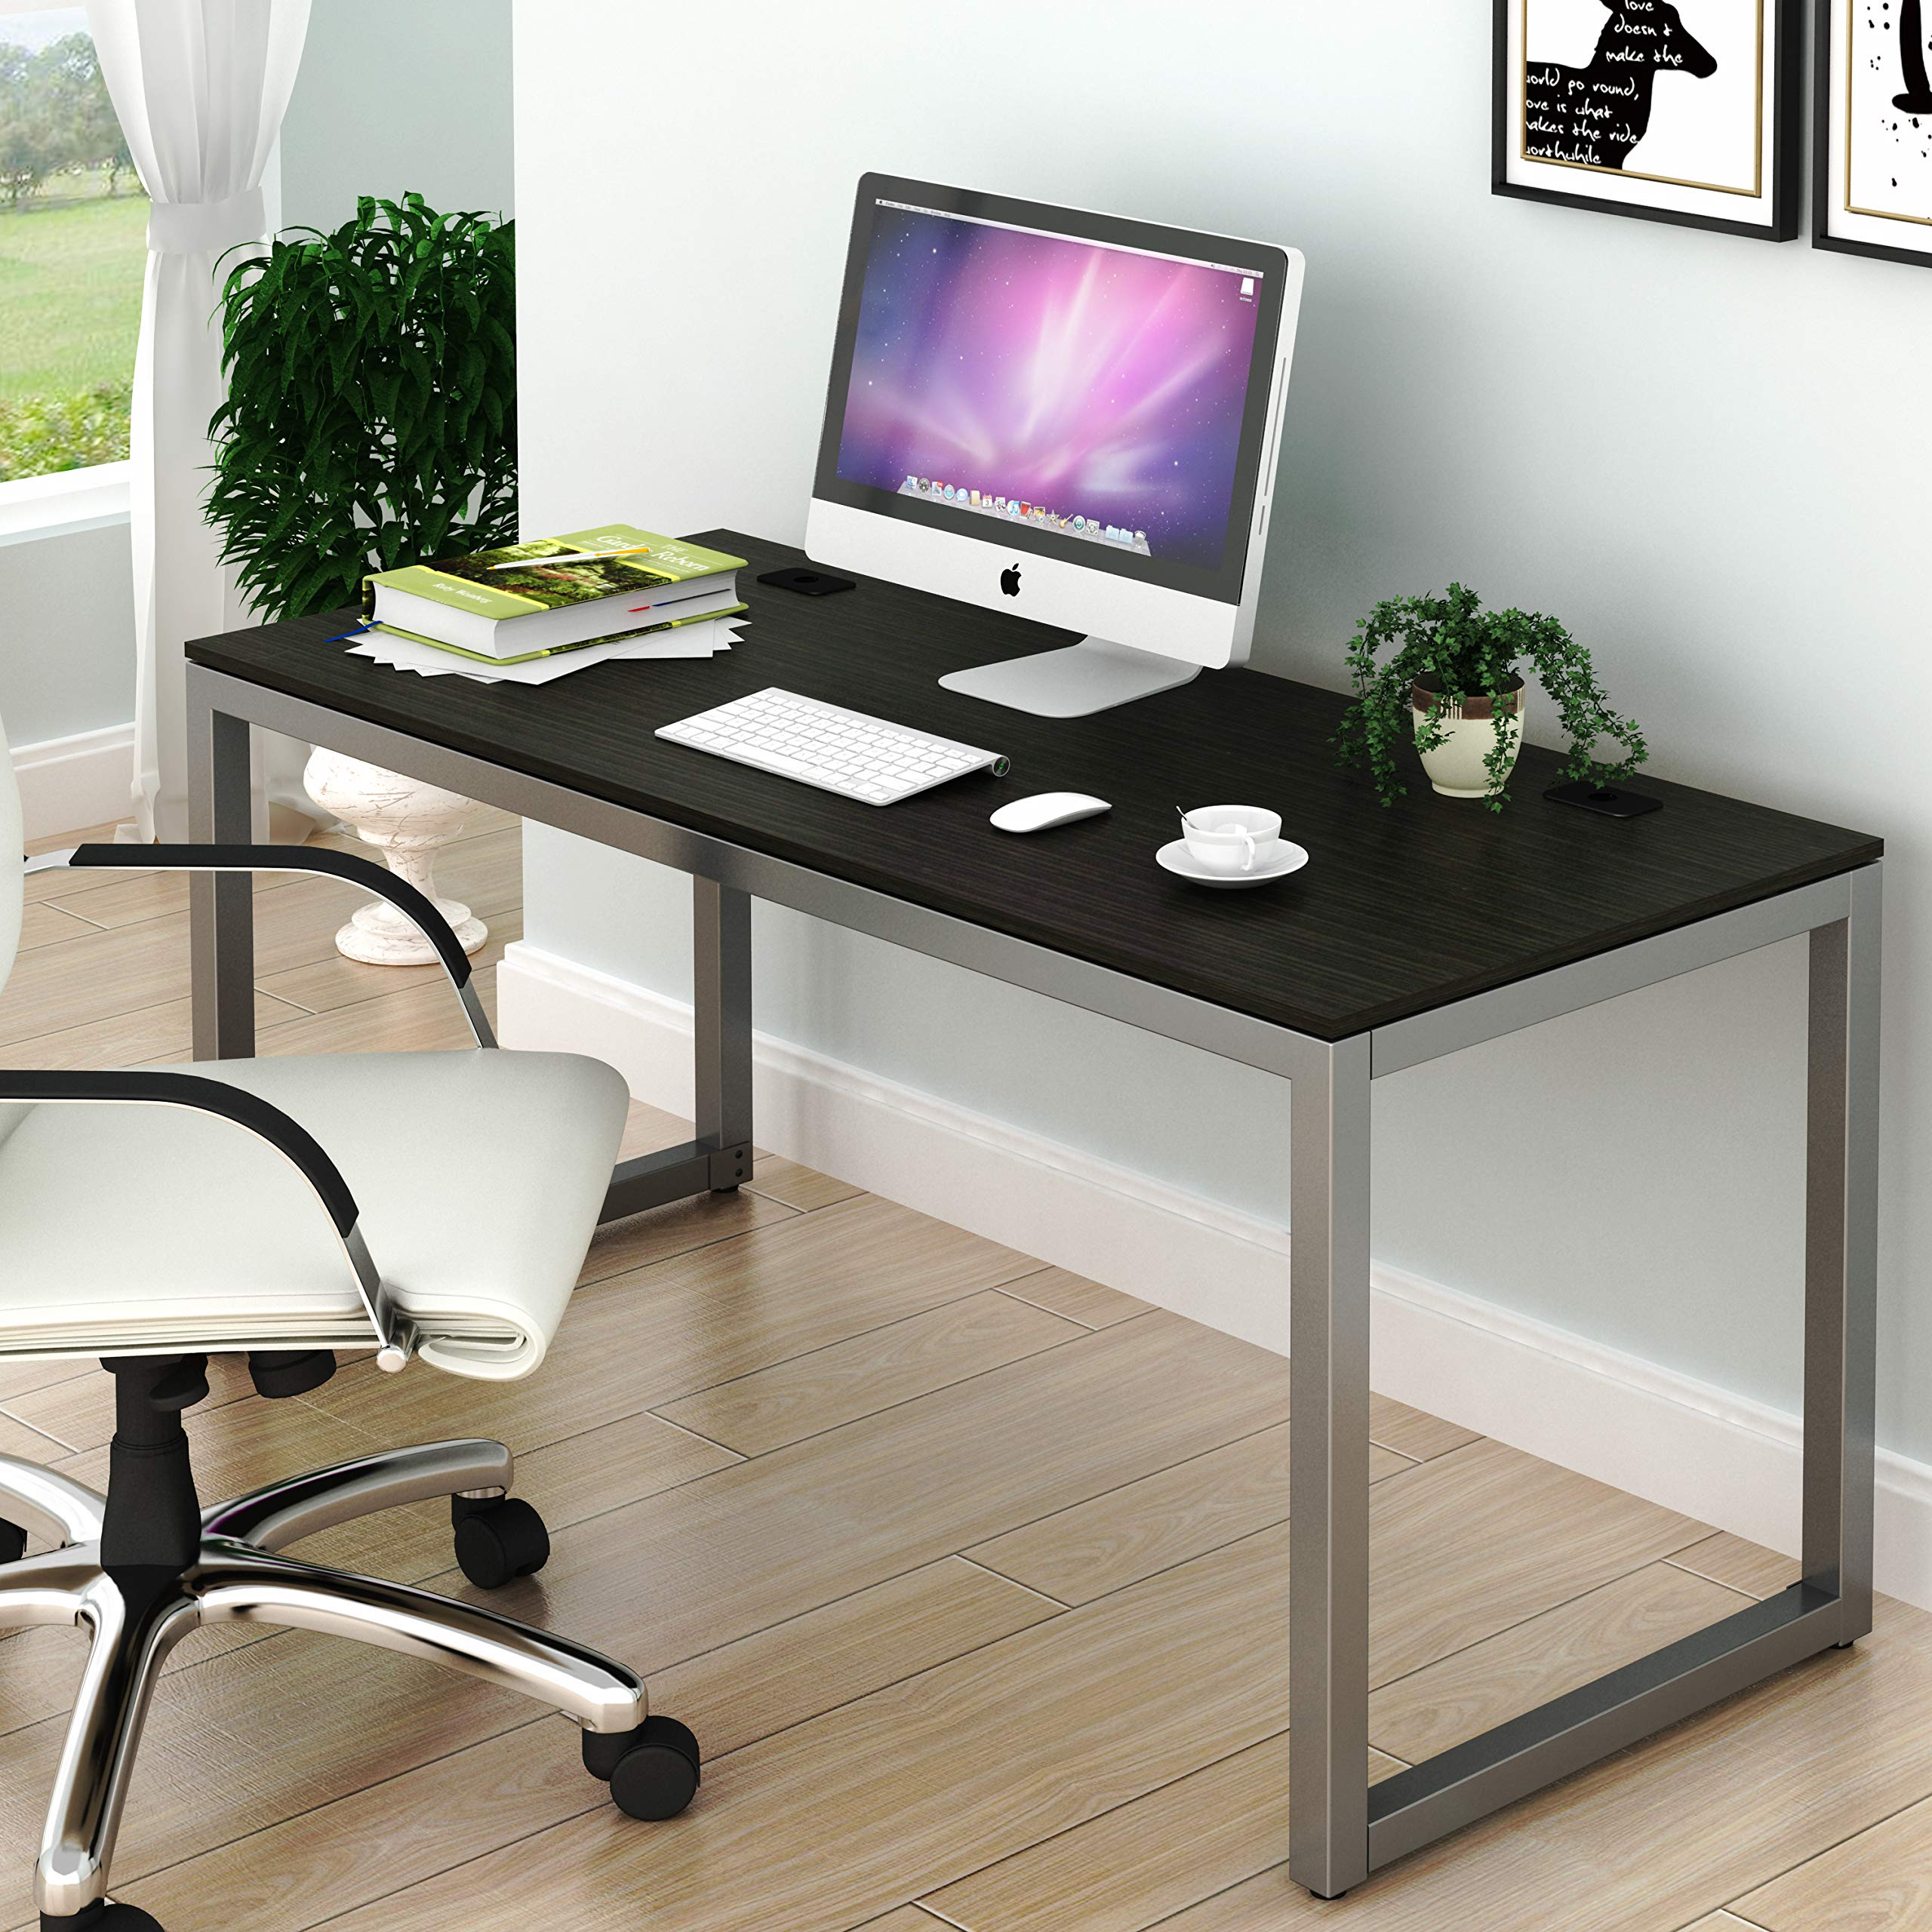 SHW Home Office 55-Inch Large Computer Desk, Espresso by SHW